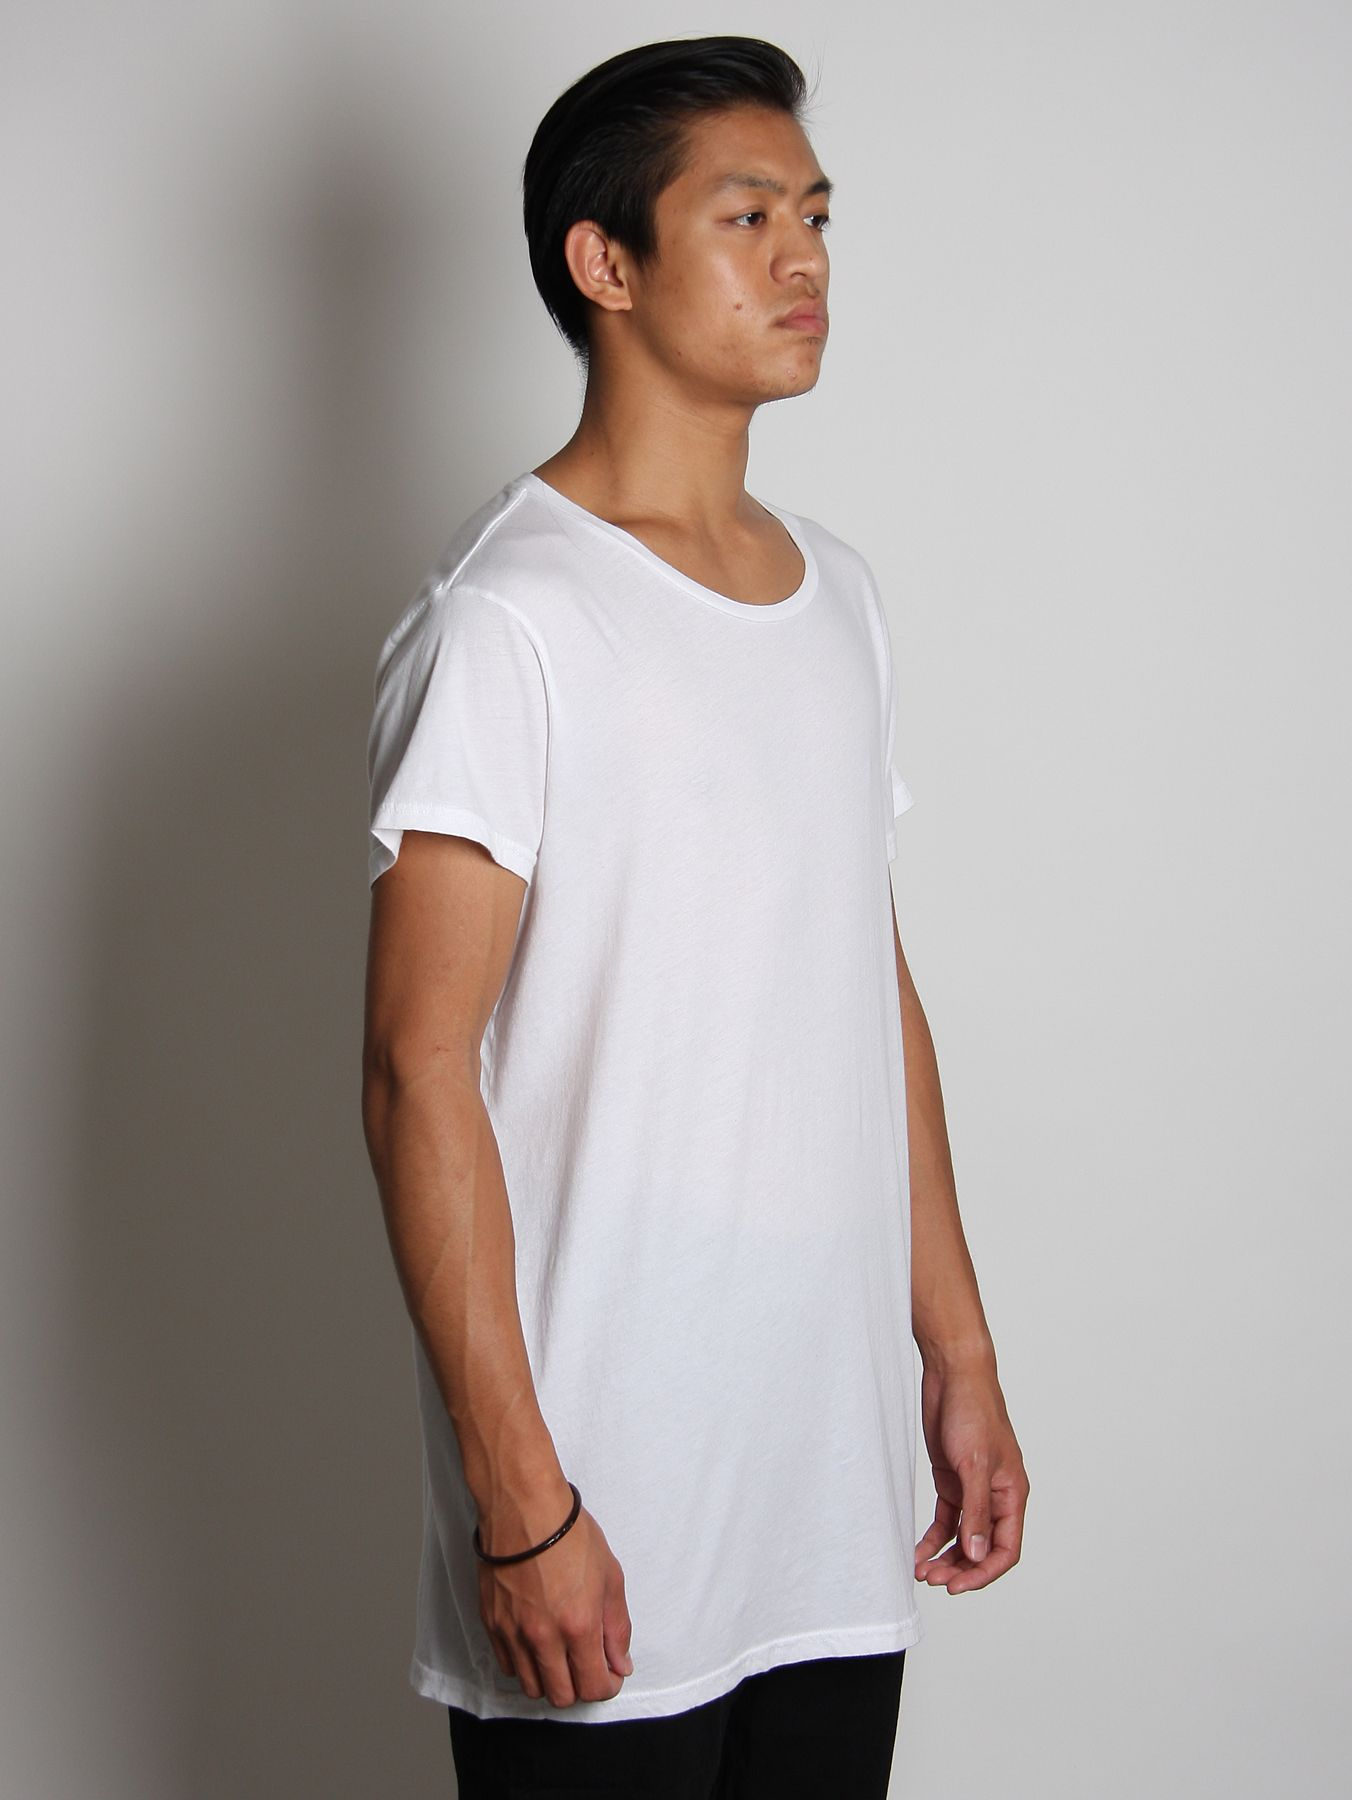 rxmance mens basic oversized t shirt in white for men lyst. Black Bedroom Furniture Sets. Home Design Ideas